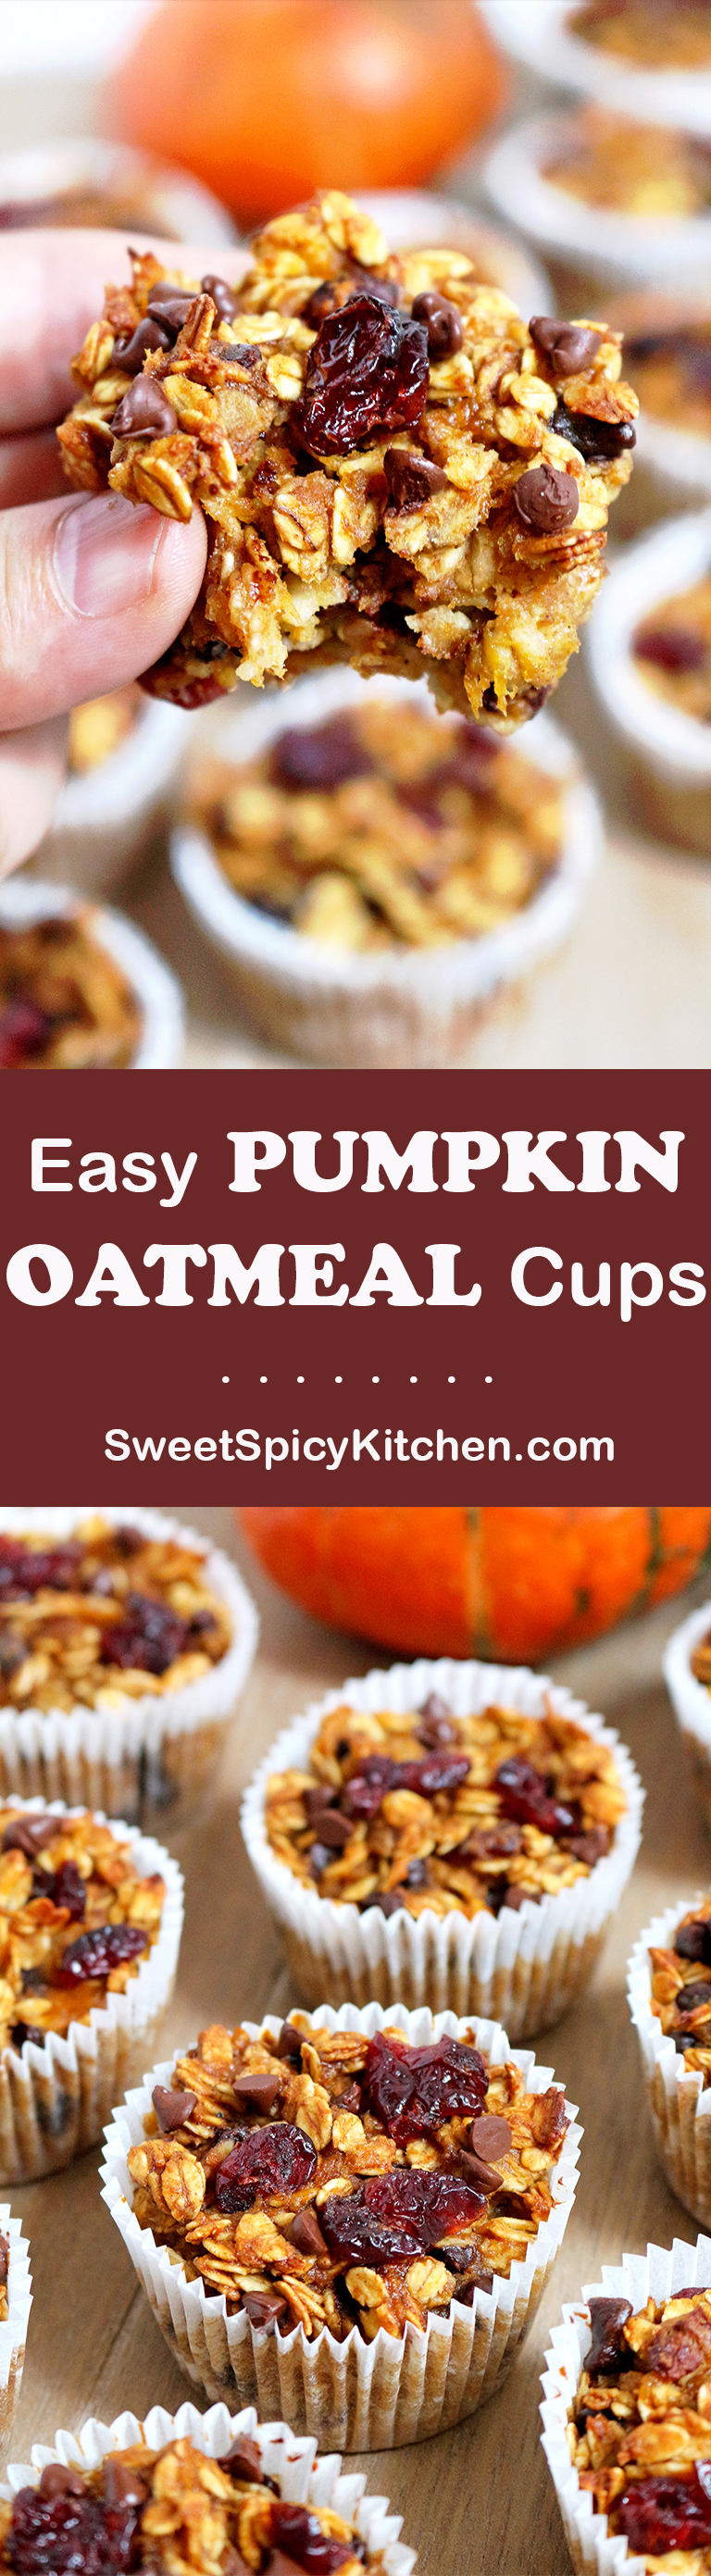 Easy Pumpkin Oatmeal Cups